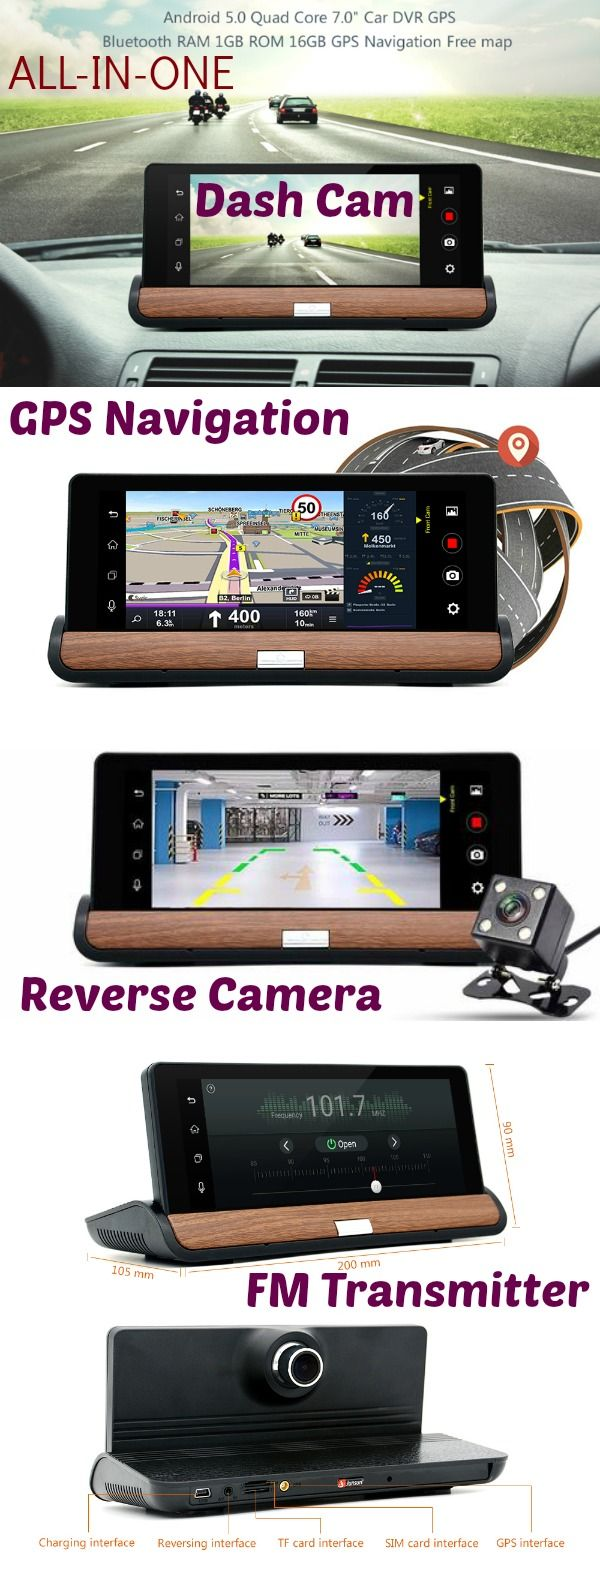 All in one device that includes dual cameras dash cam and reverse cam